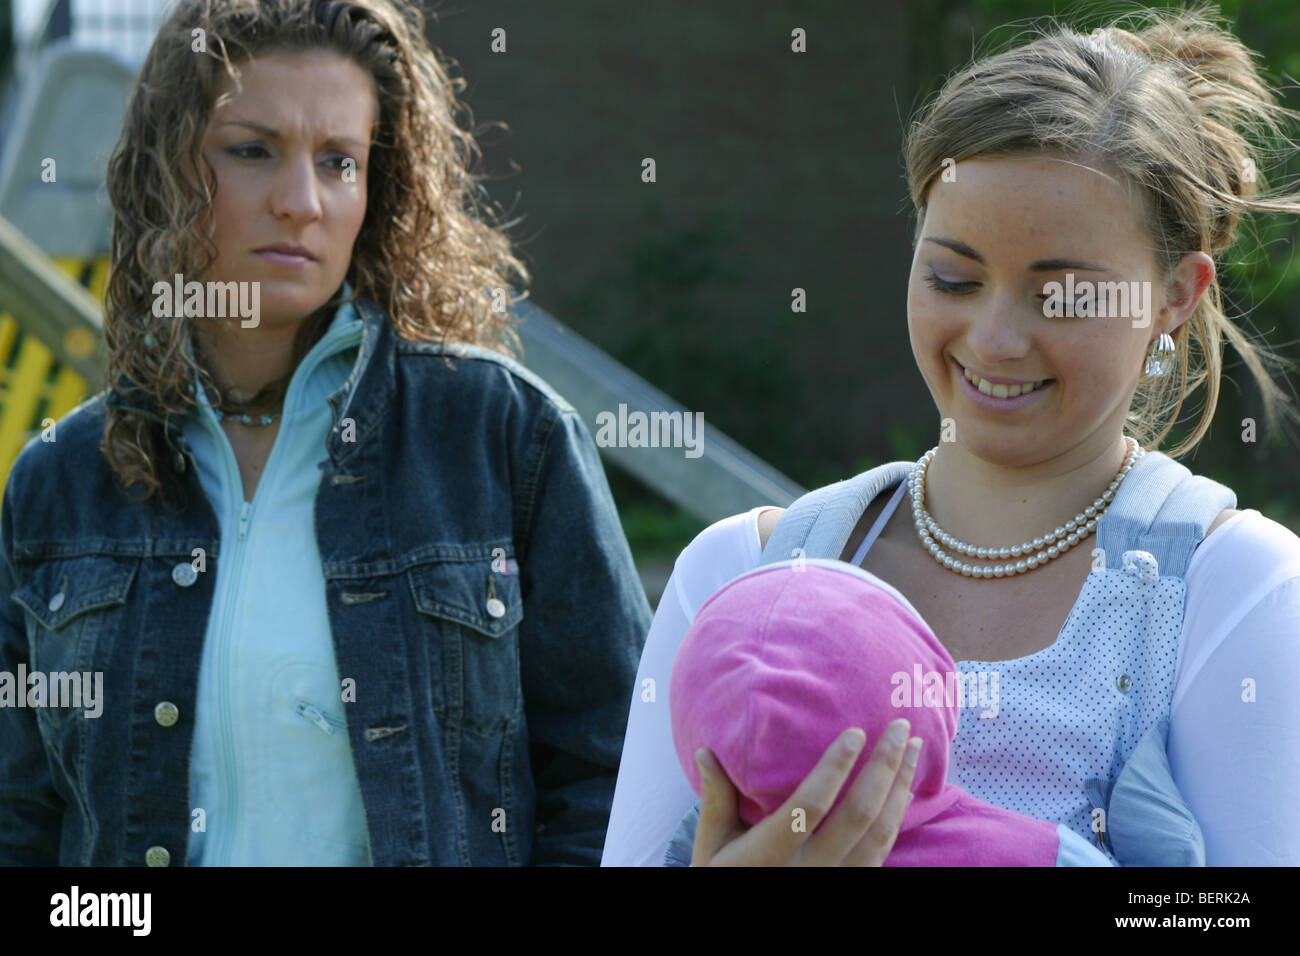 Woman looking jealous at friends baby - Stock Image